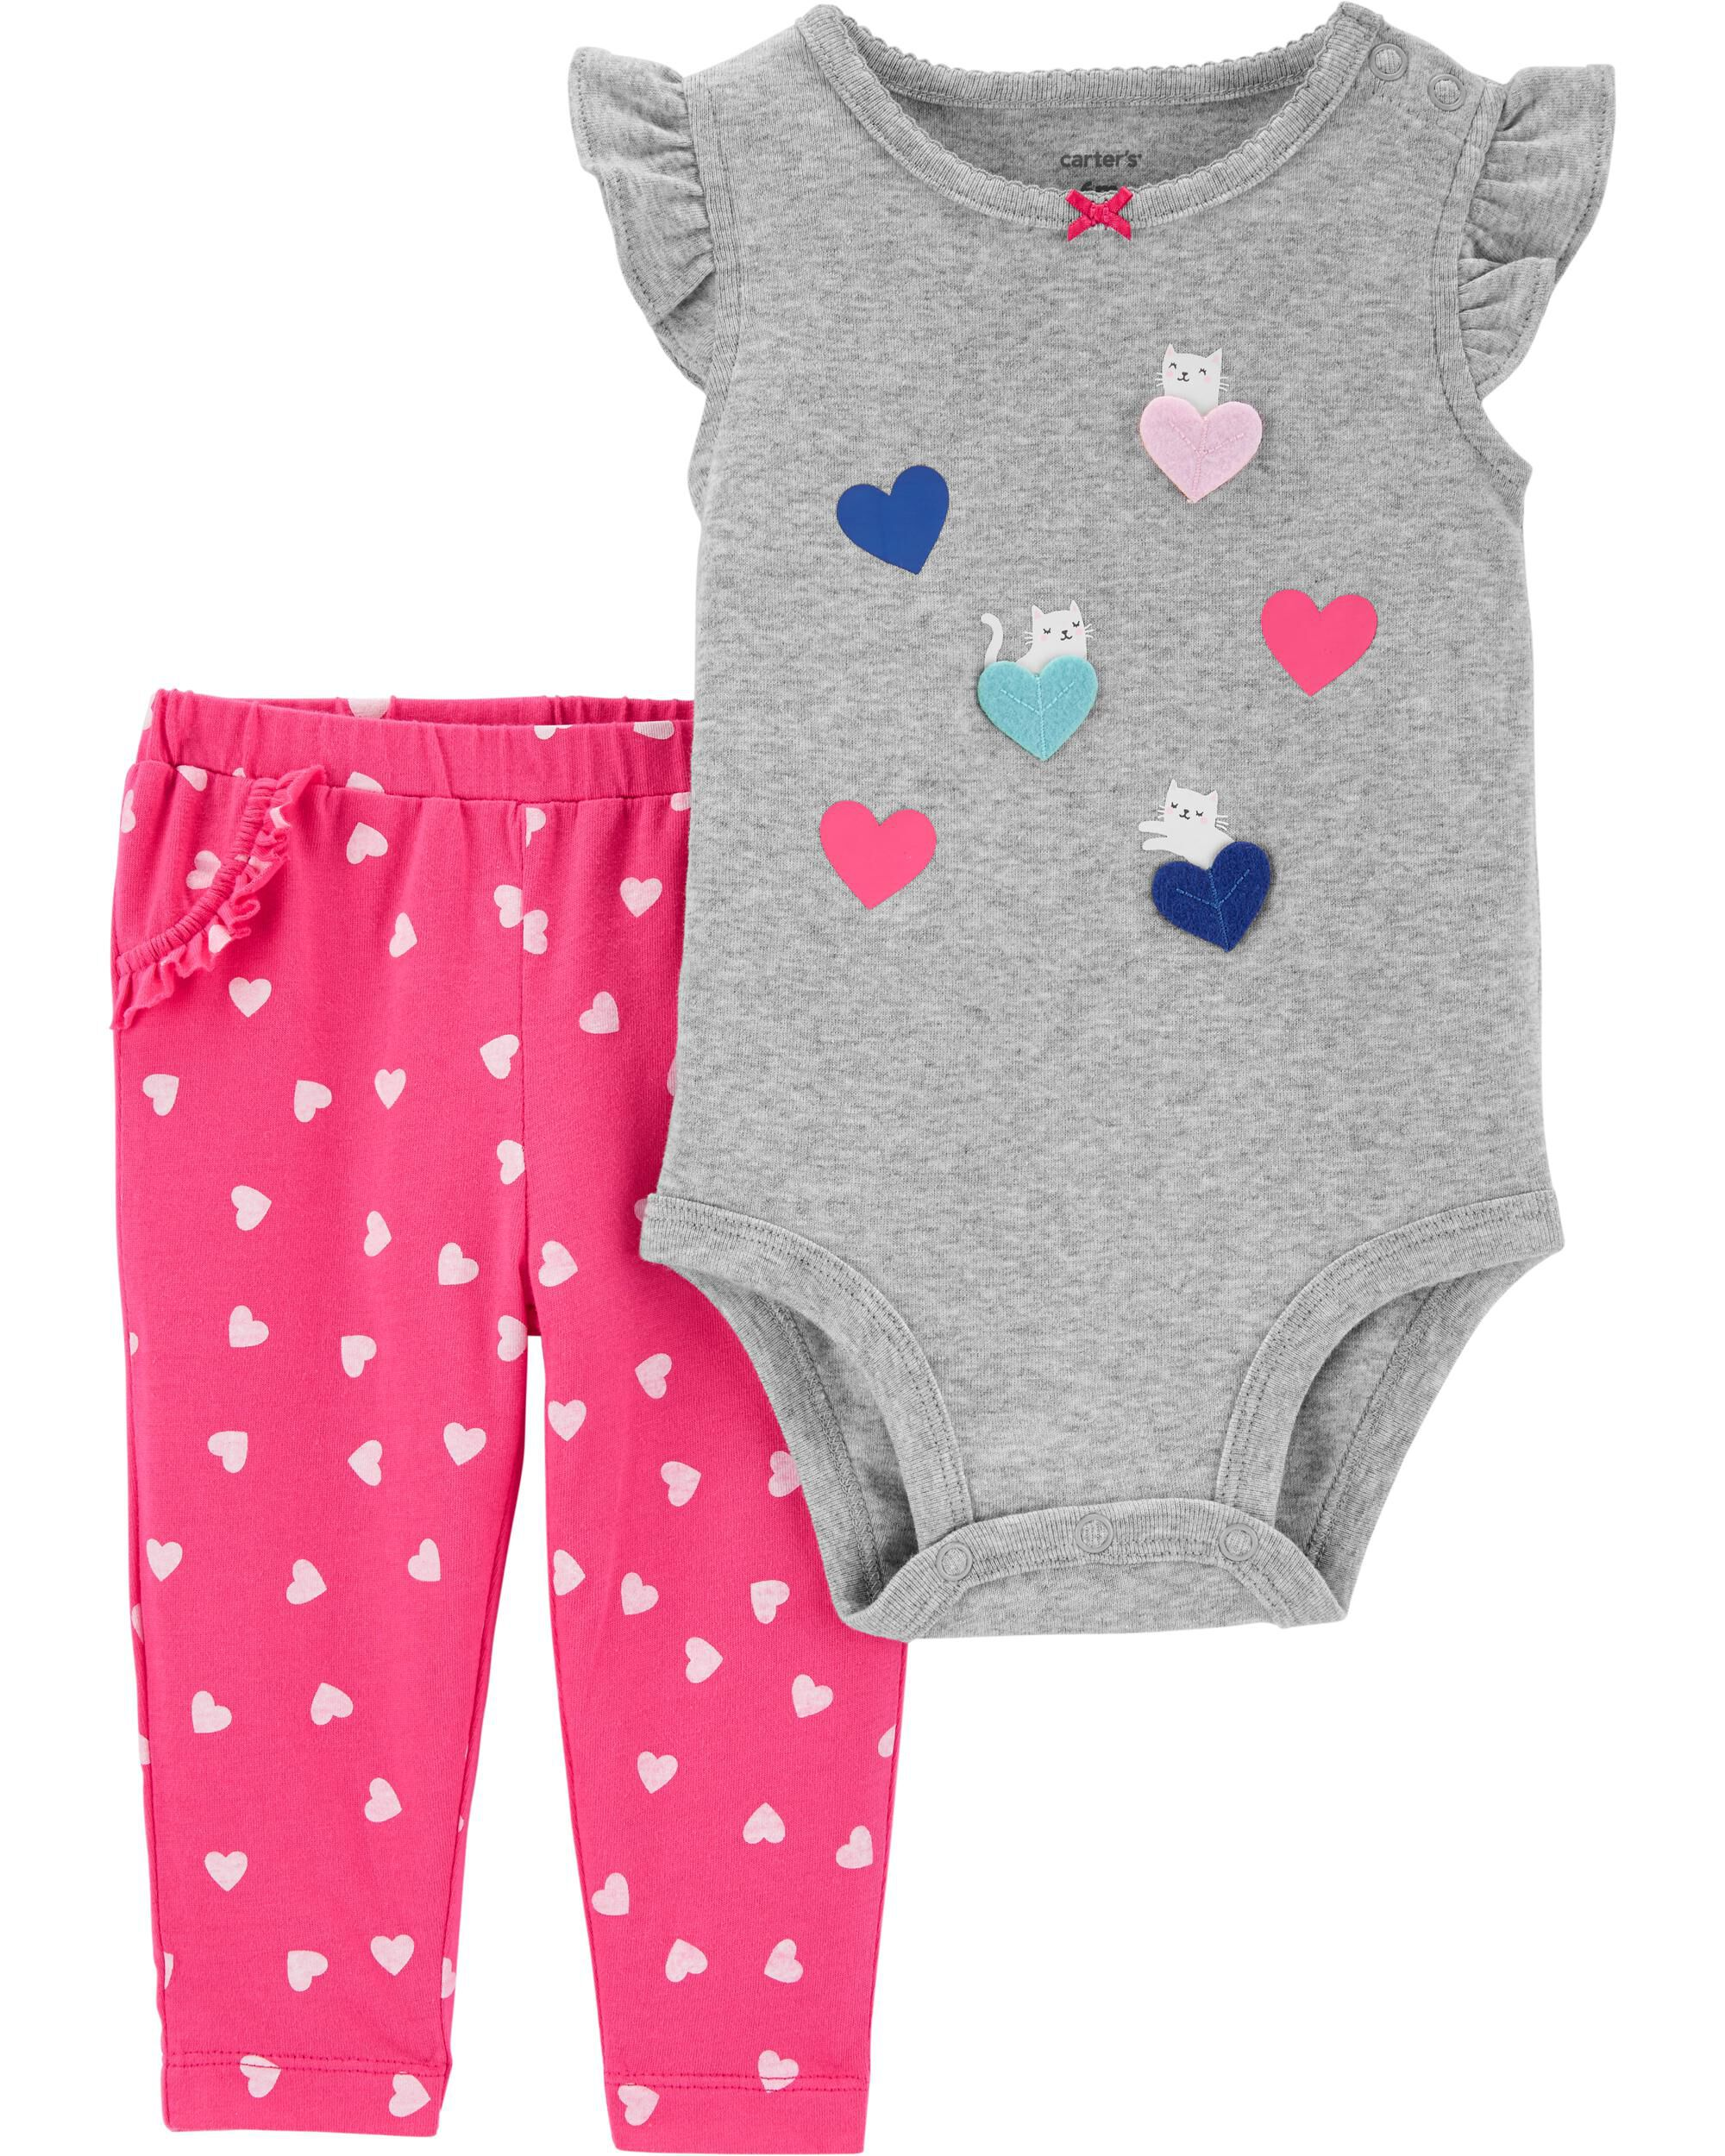 2-Piece Heart Bodysuit Pant Set